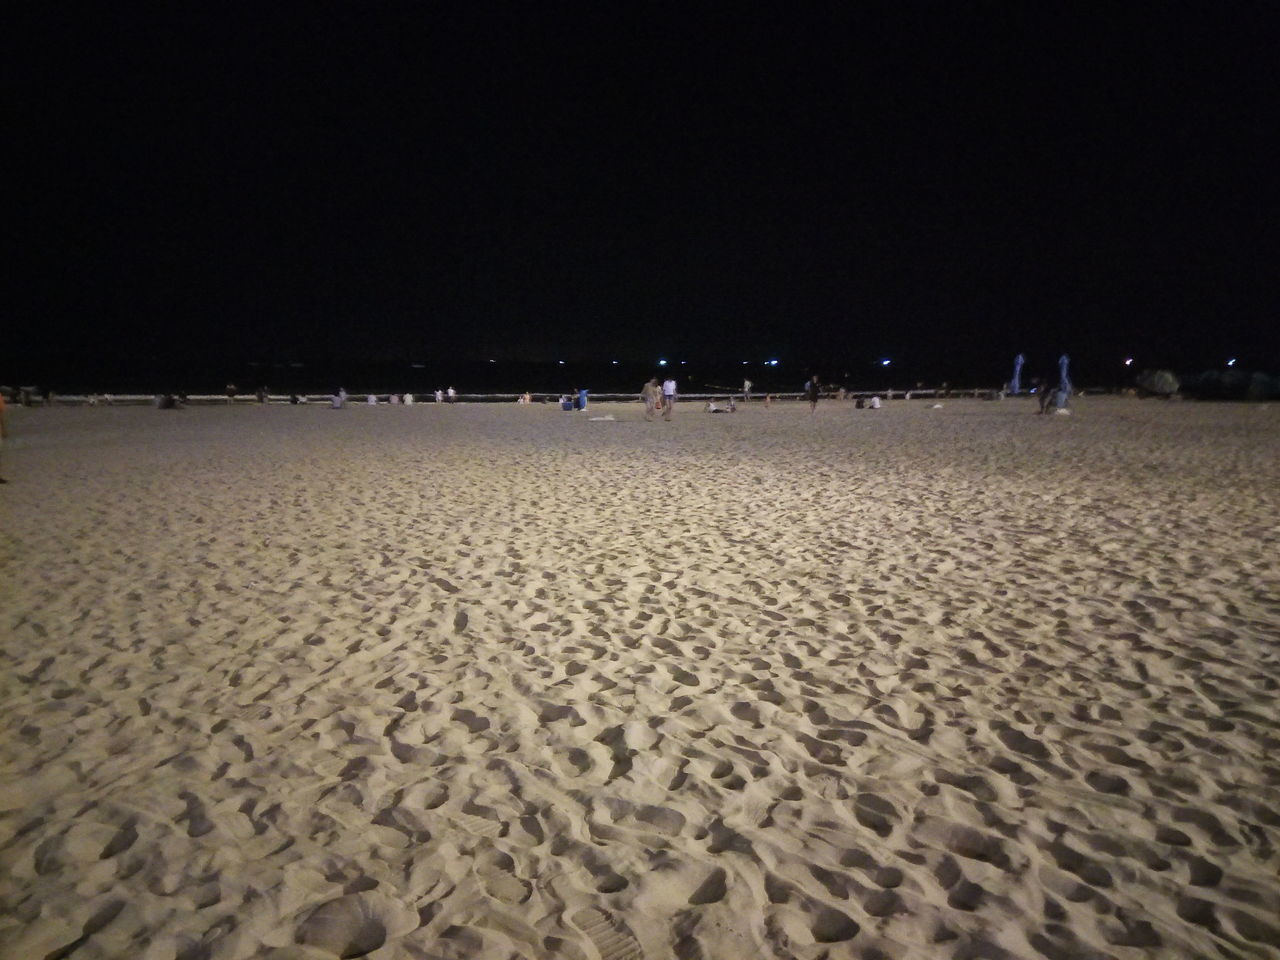 sand, beach, night, real people, nature, outdoors, leisure activity, large group of people, vacations, men, lifestyles, landscape, beauty in nature, sky, people